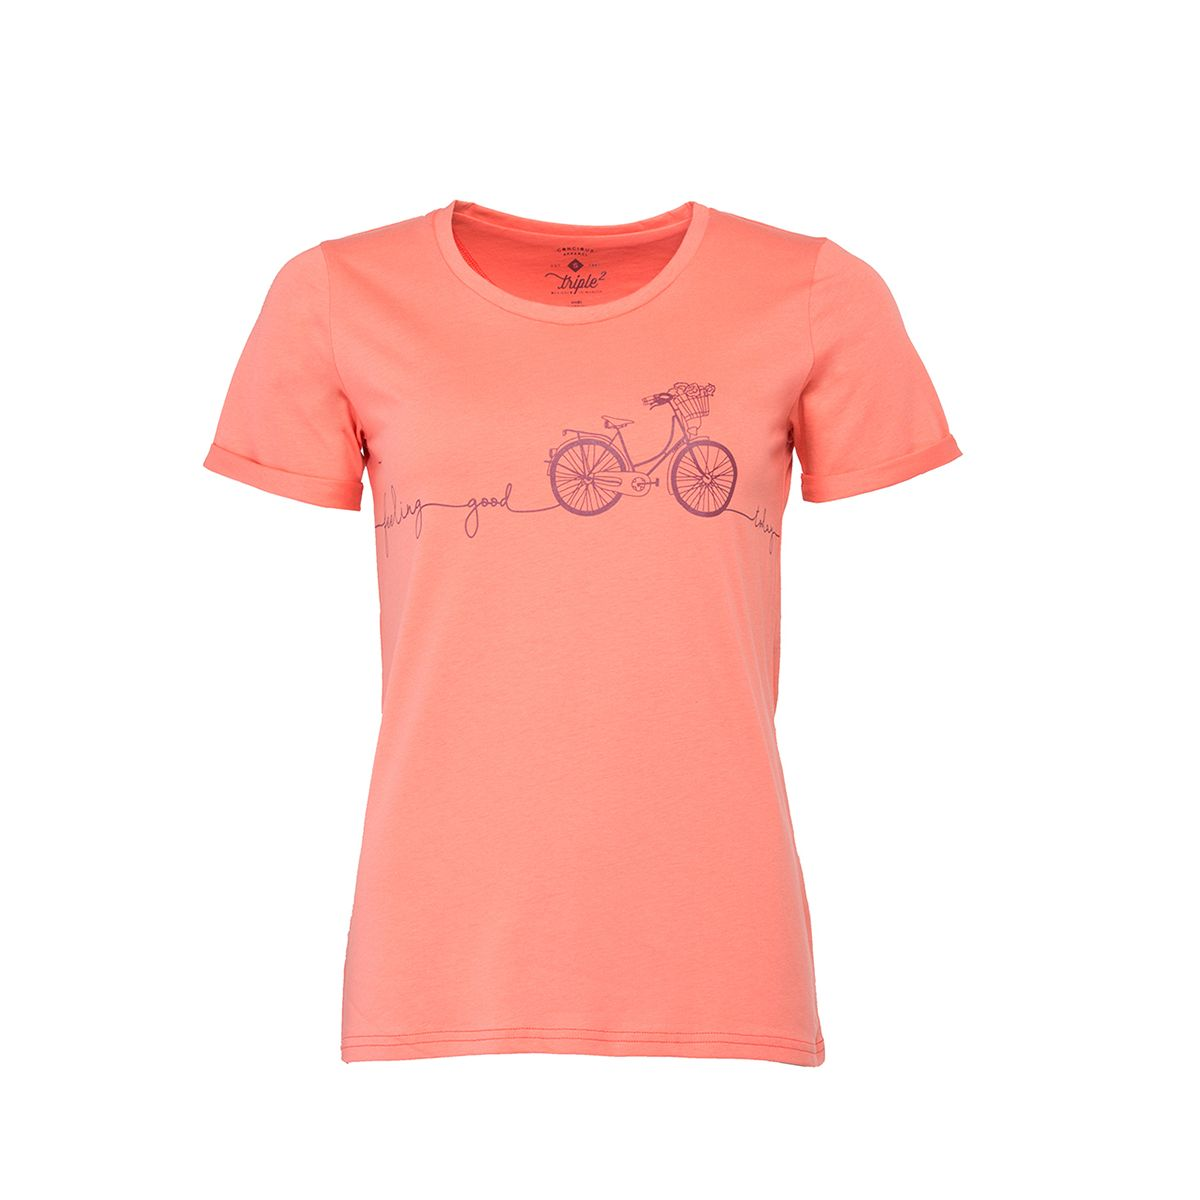 LAAG ORGANIC COTTON SHIRT BIKE WOMEN